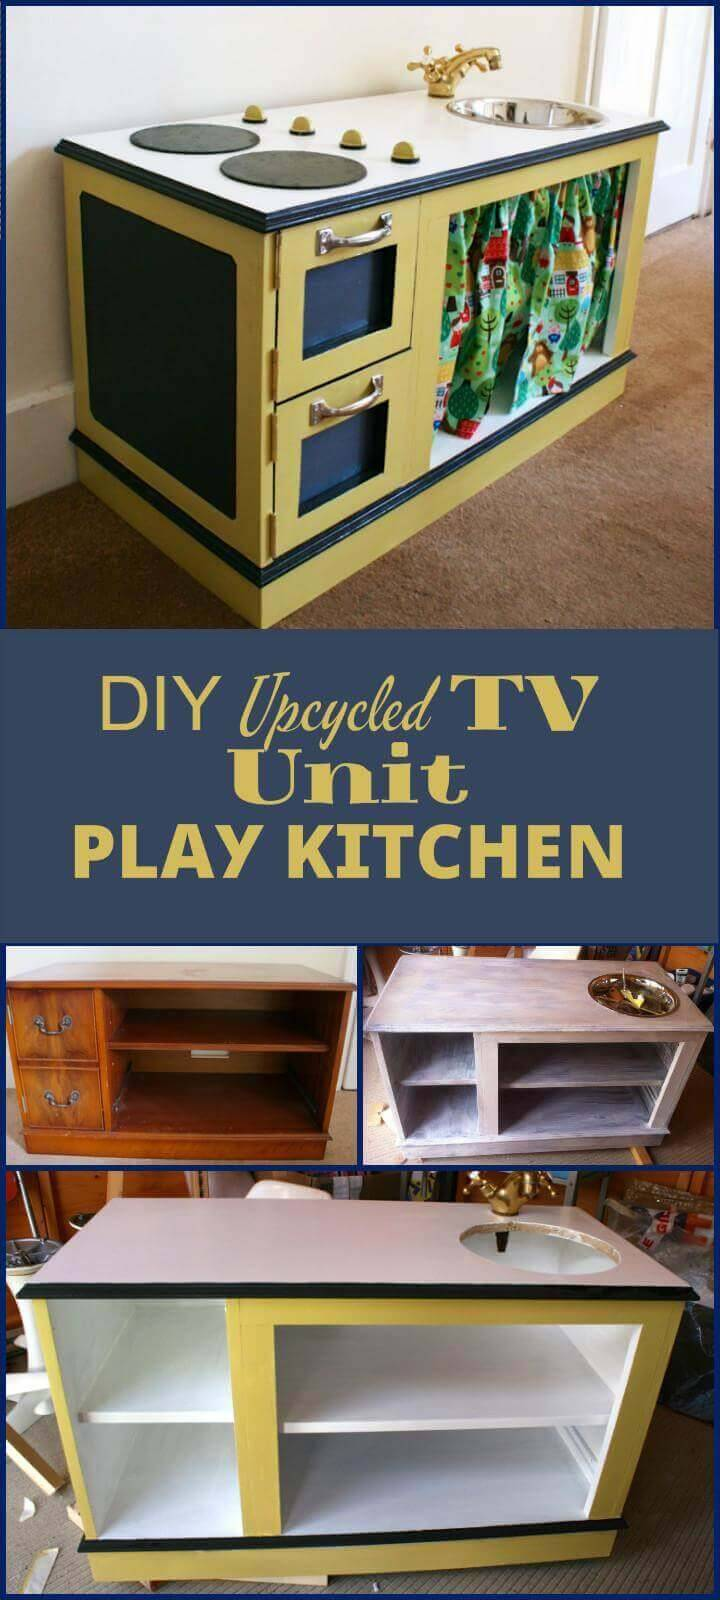 Recycled TV unit into Kids Play Kitchen